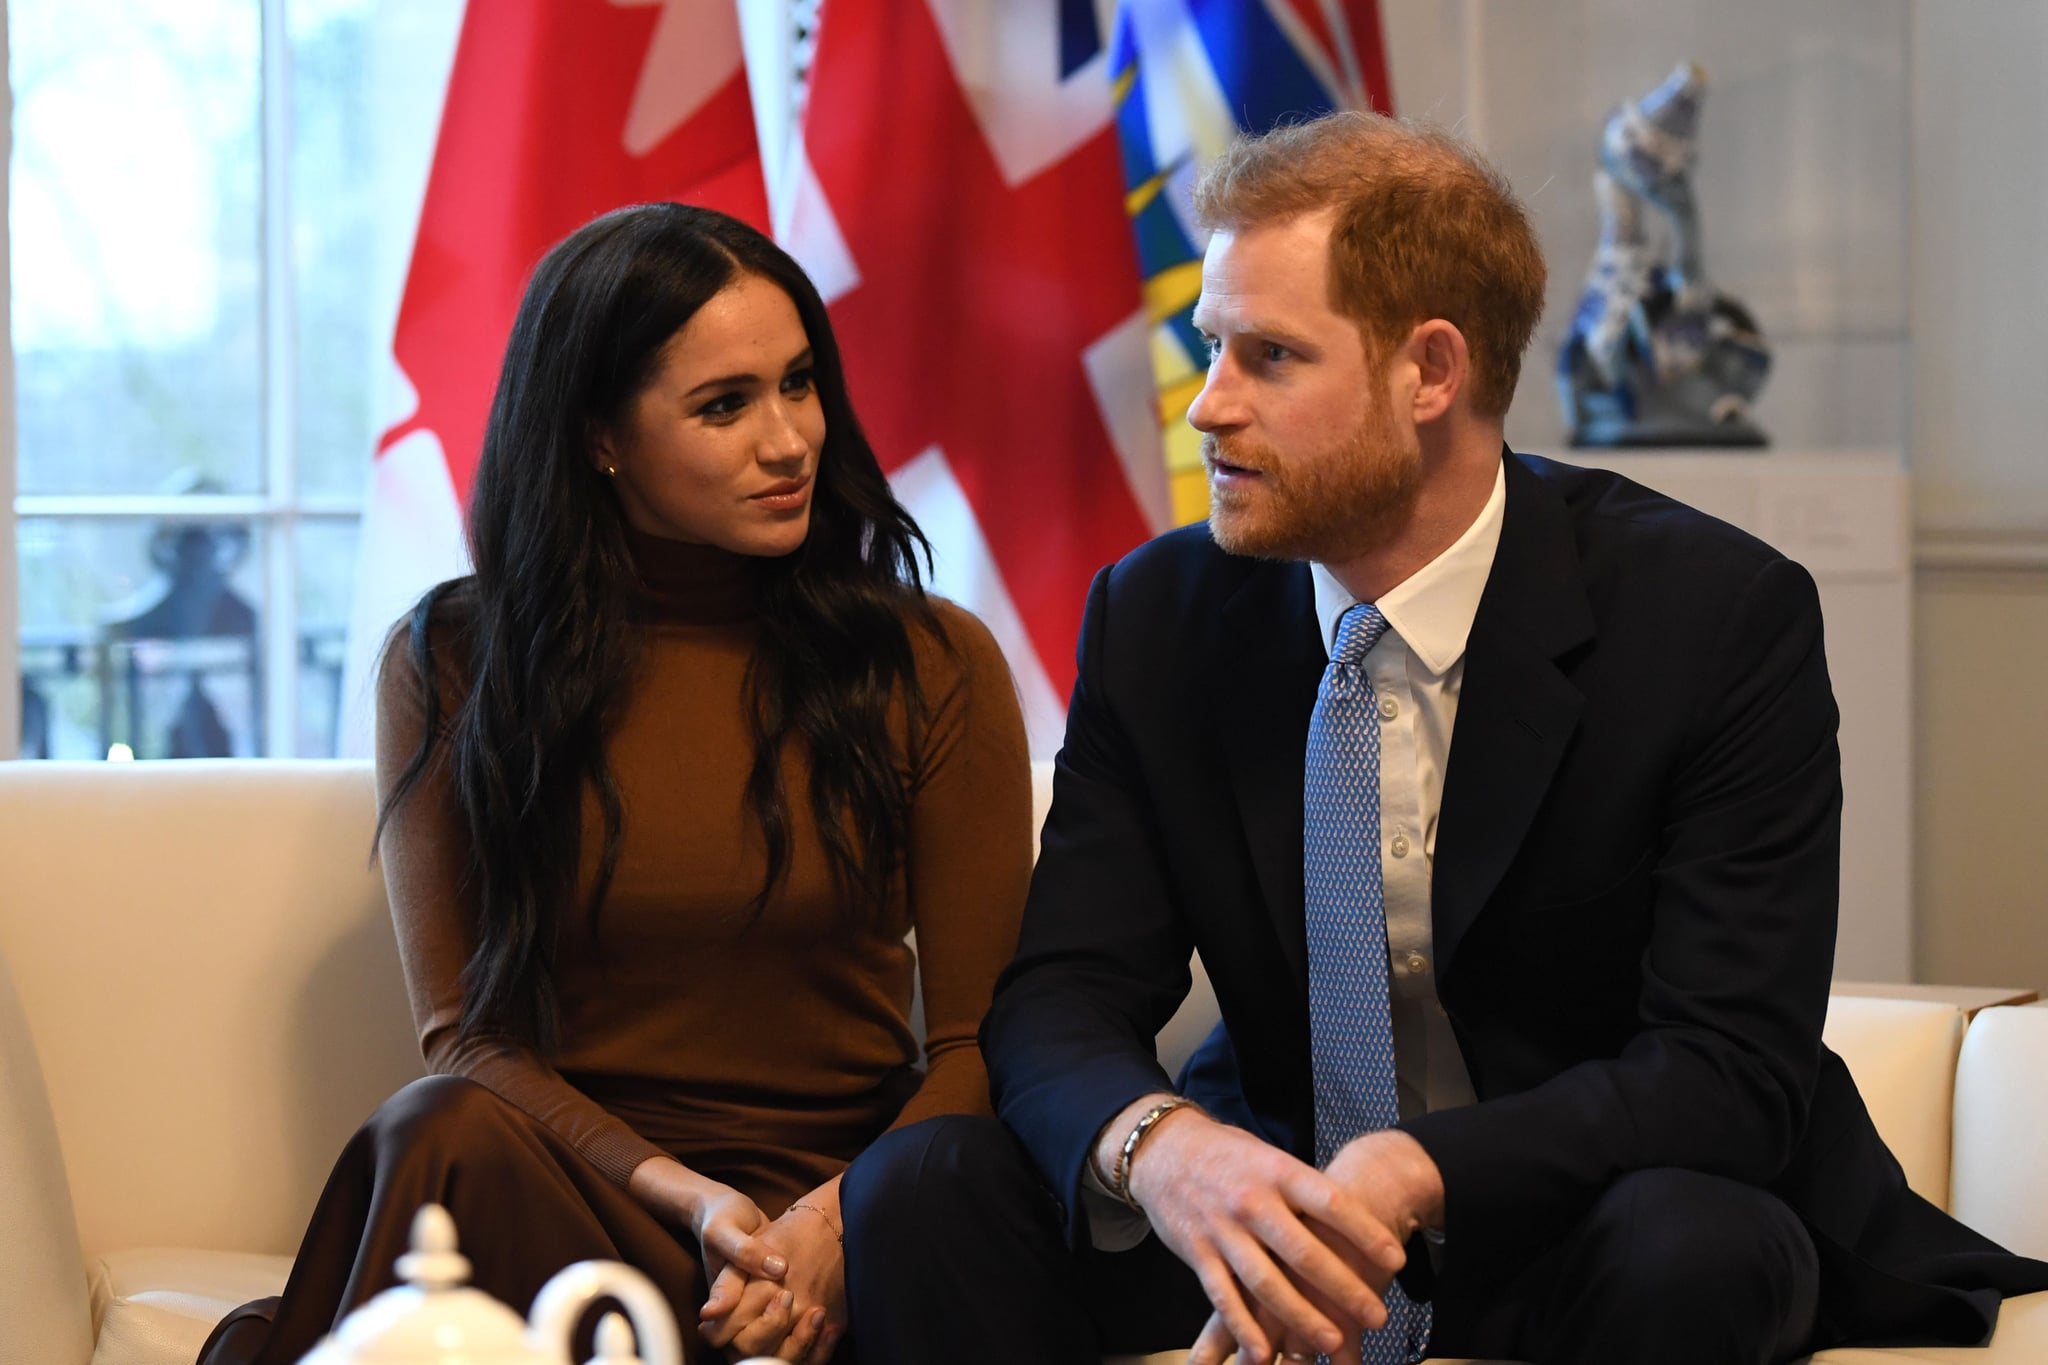 Britain's Prince Harry, Duke of Sussex and Meghan, Duchess of Sussex gesture during their visit to Canada House in thanks for the warm Canadian hospitality and support they received during their recent stay in Canada,  in London on January 7, 2020. (Photo by DANIEL LEAL-OLIVAS / various sources / AFP) (Photo by DANIEL LEAL-OLIVAS/AFP via Getty Images)